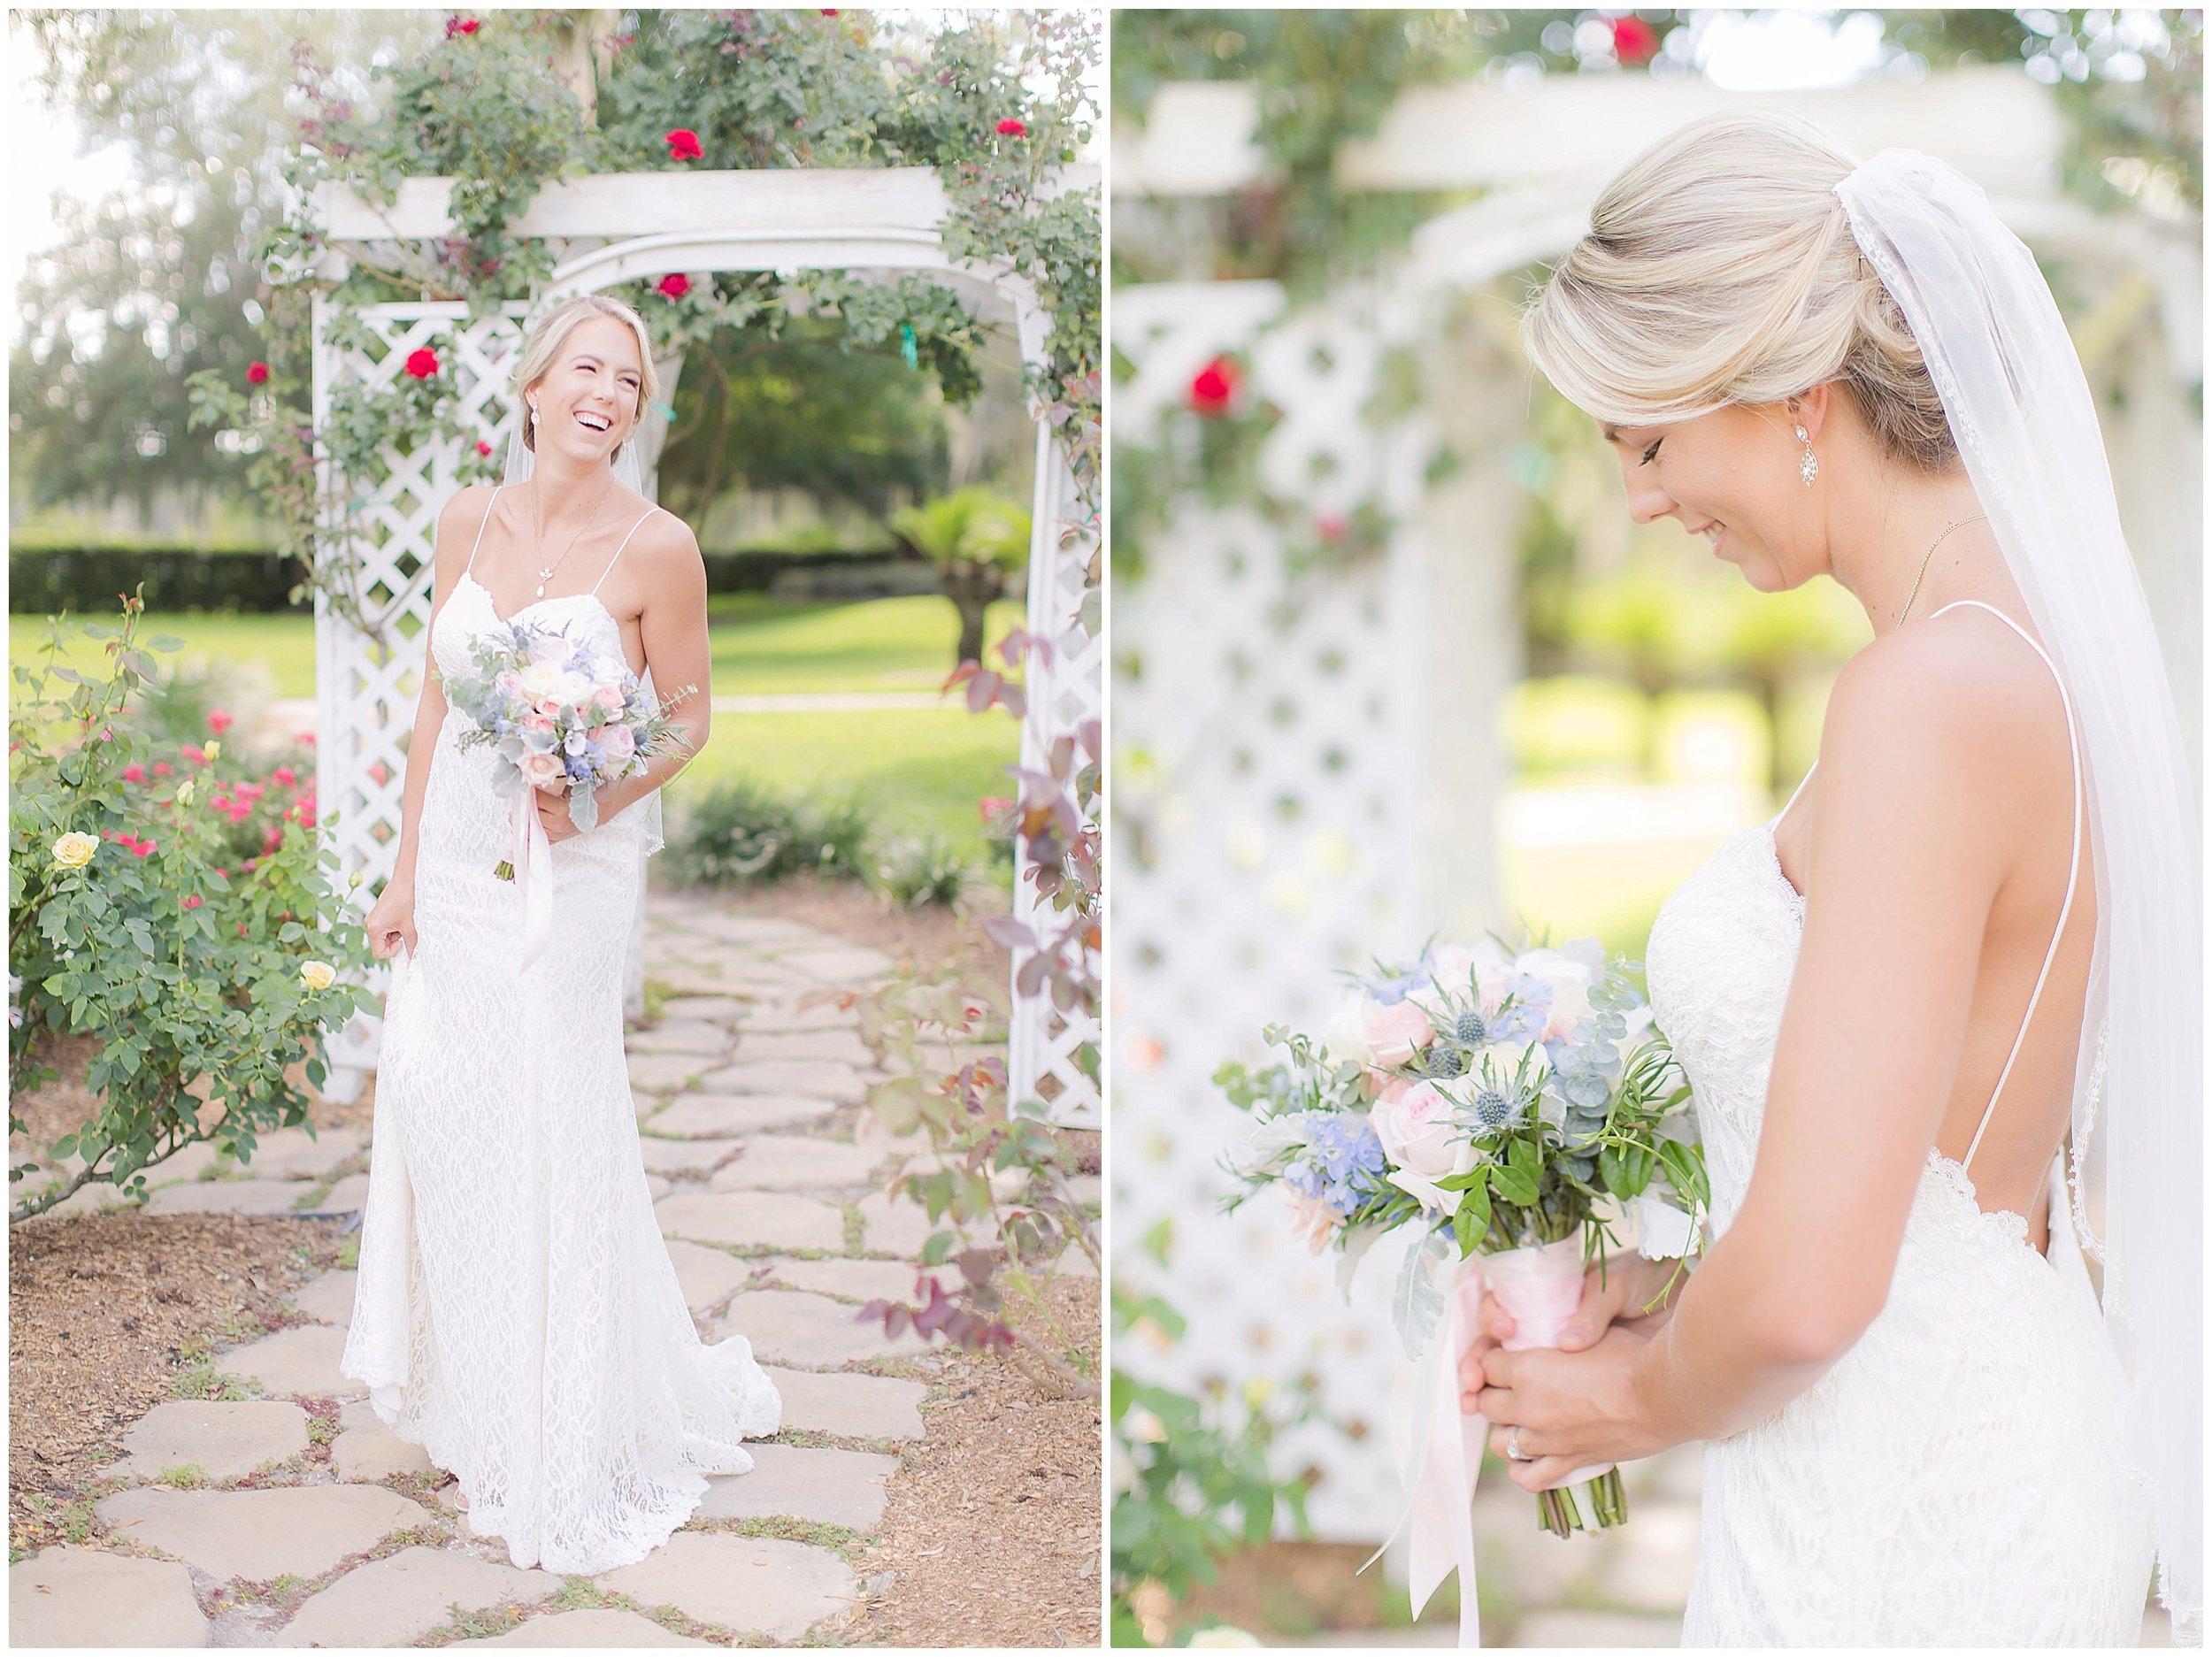 Bridal Portraits in rose garden with short veil and summer wedding gown